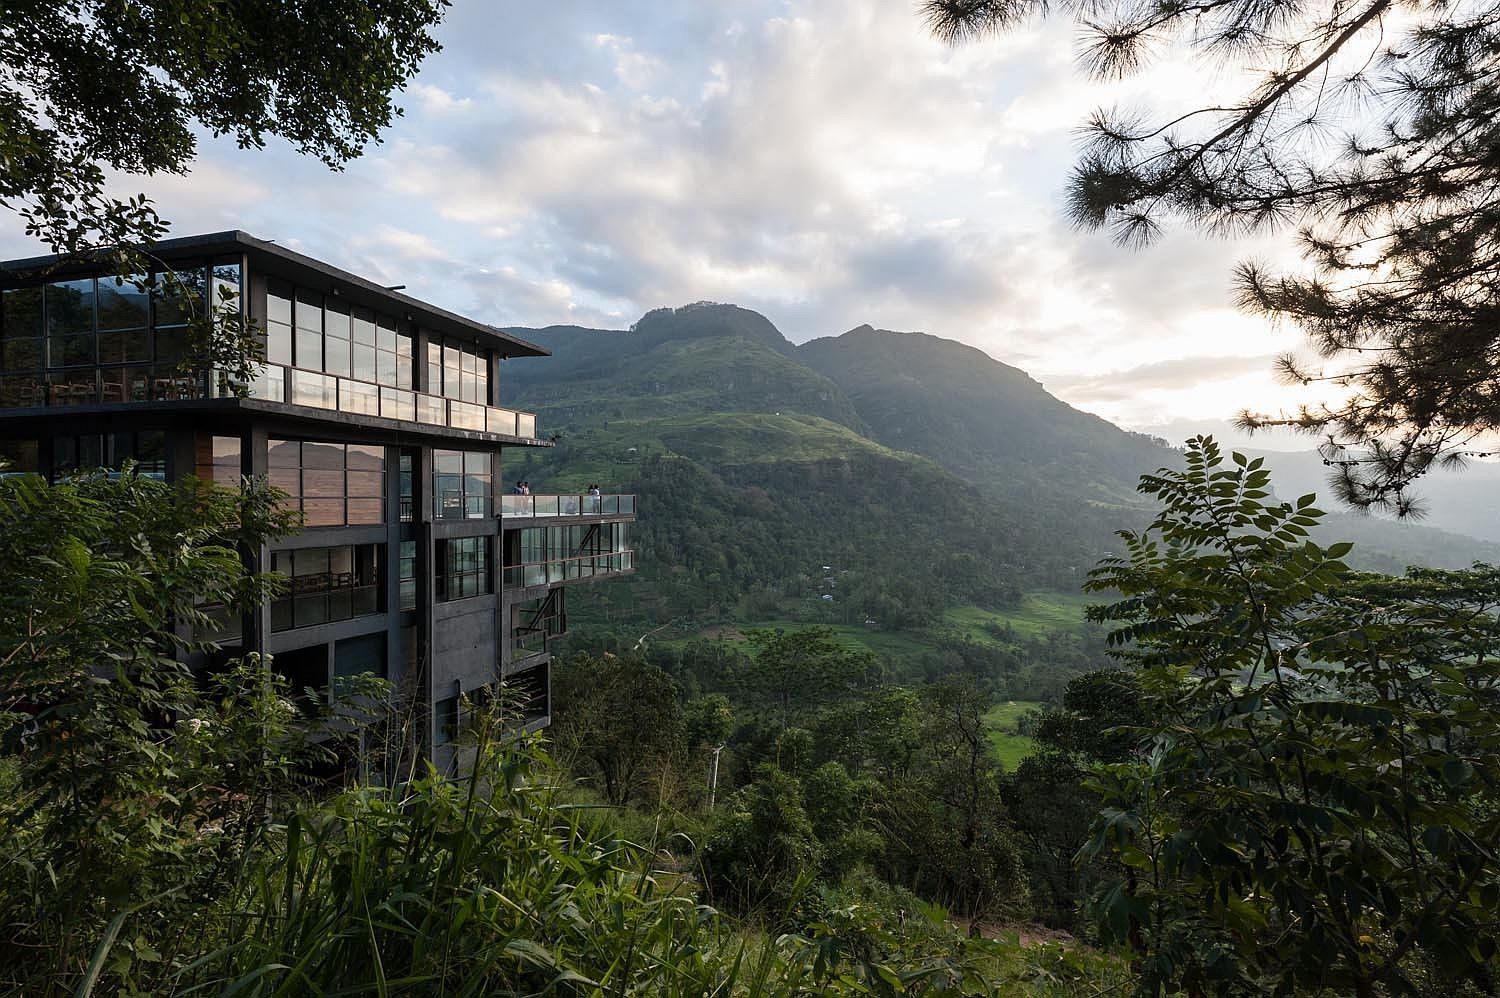 Stunning 6-story hotel building blends into the majestic landscape of Ramboda